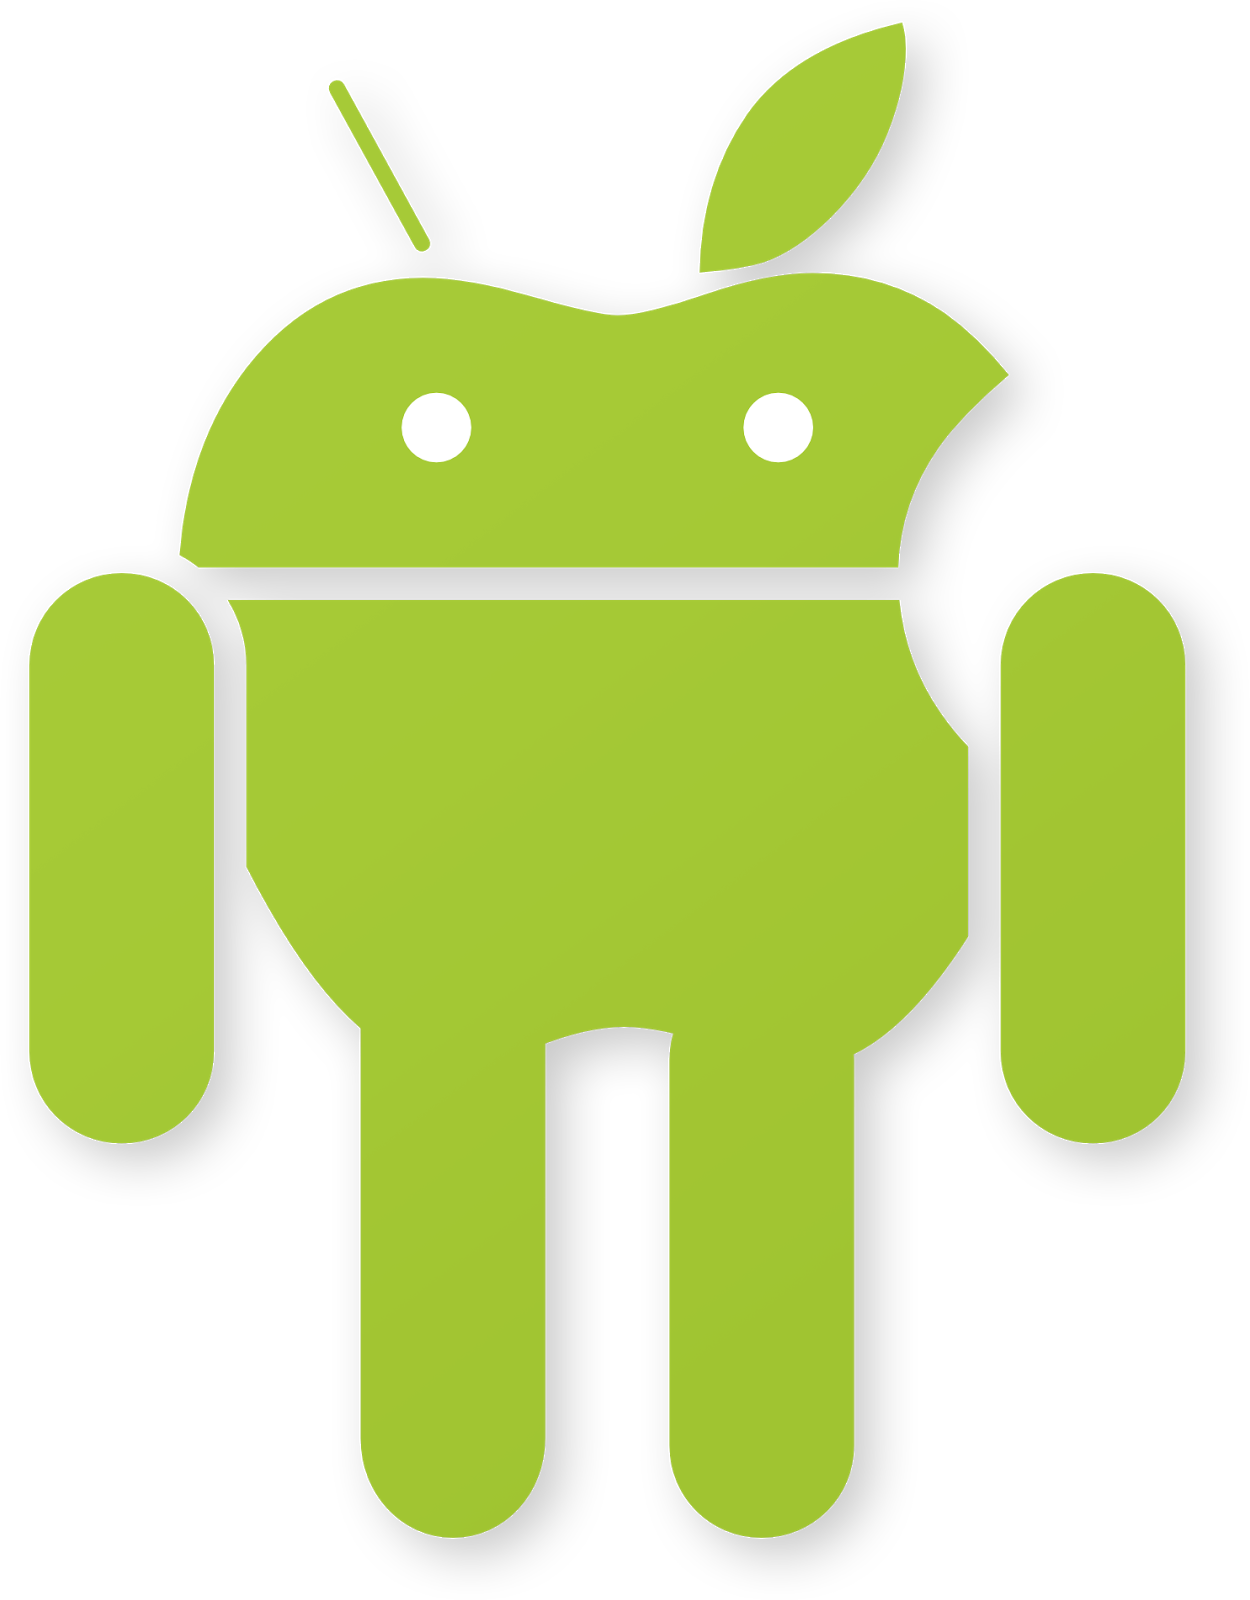 AndroidHybrid